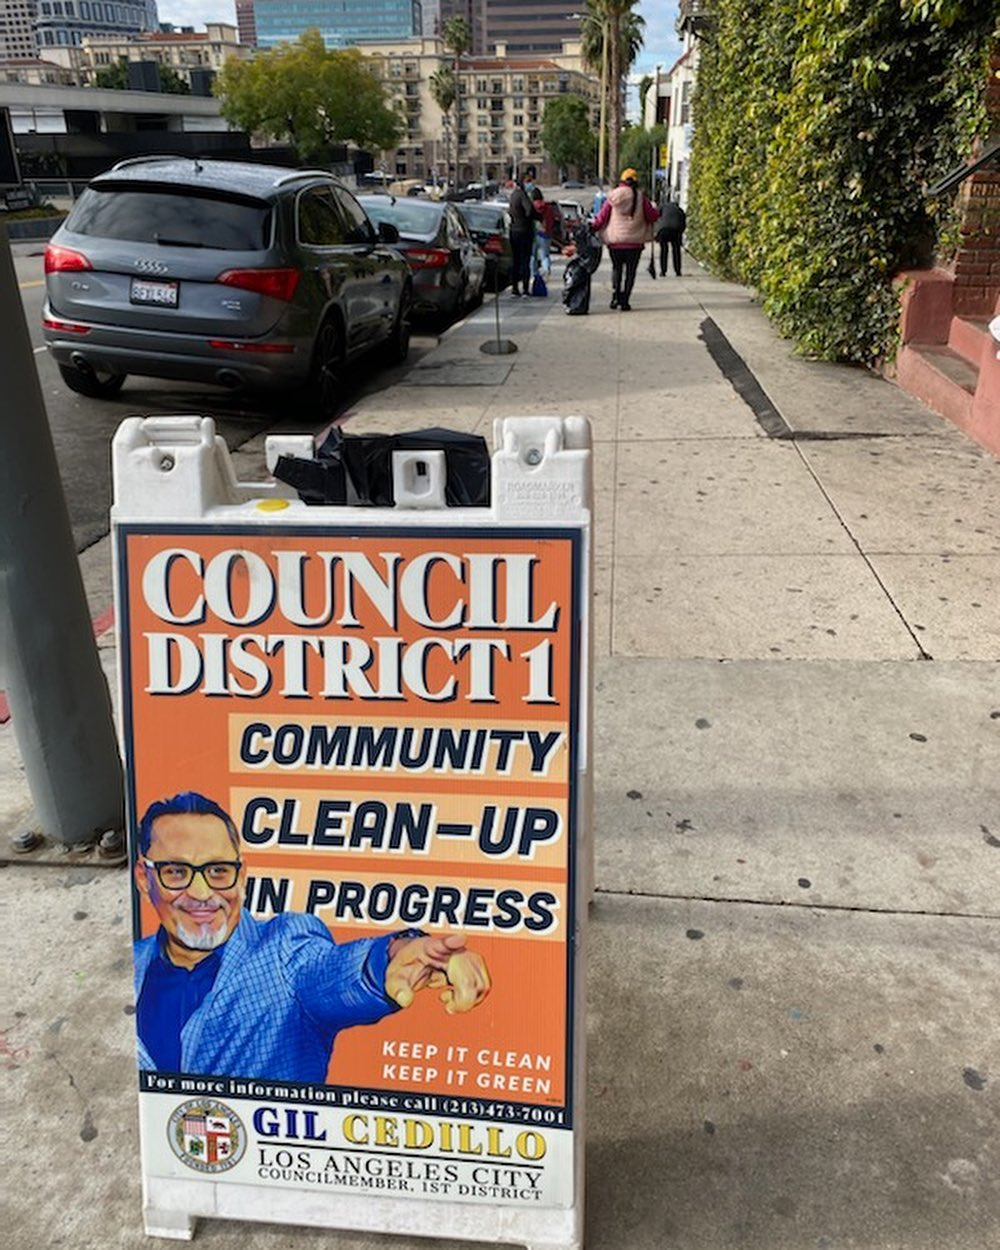 Councilmember Gil Cedillo's community clean up in progress at the corner of Bixel St and Maryland St in Westlake 3-11-2021